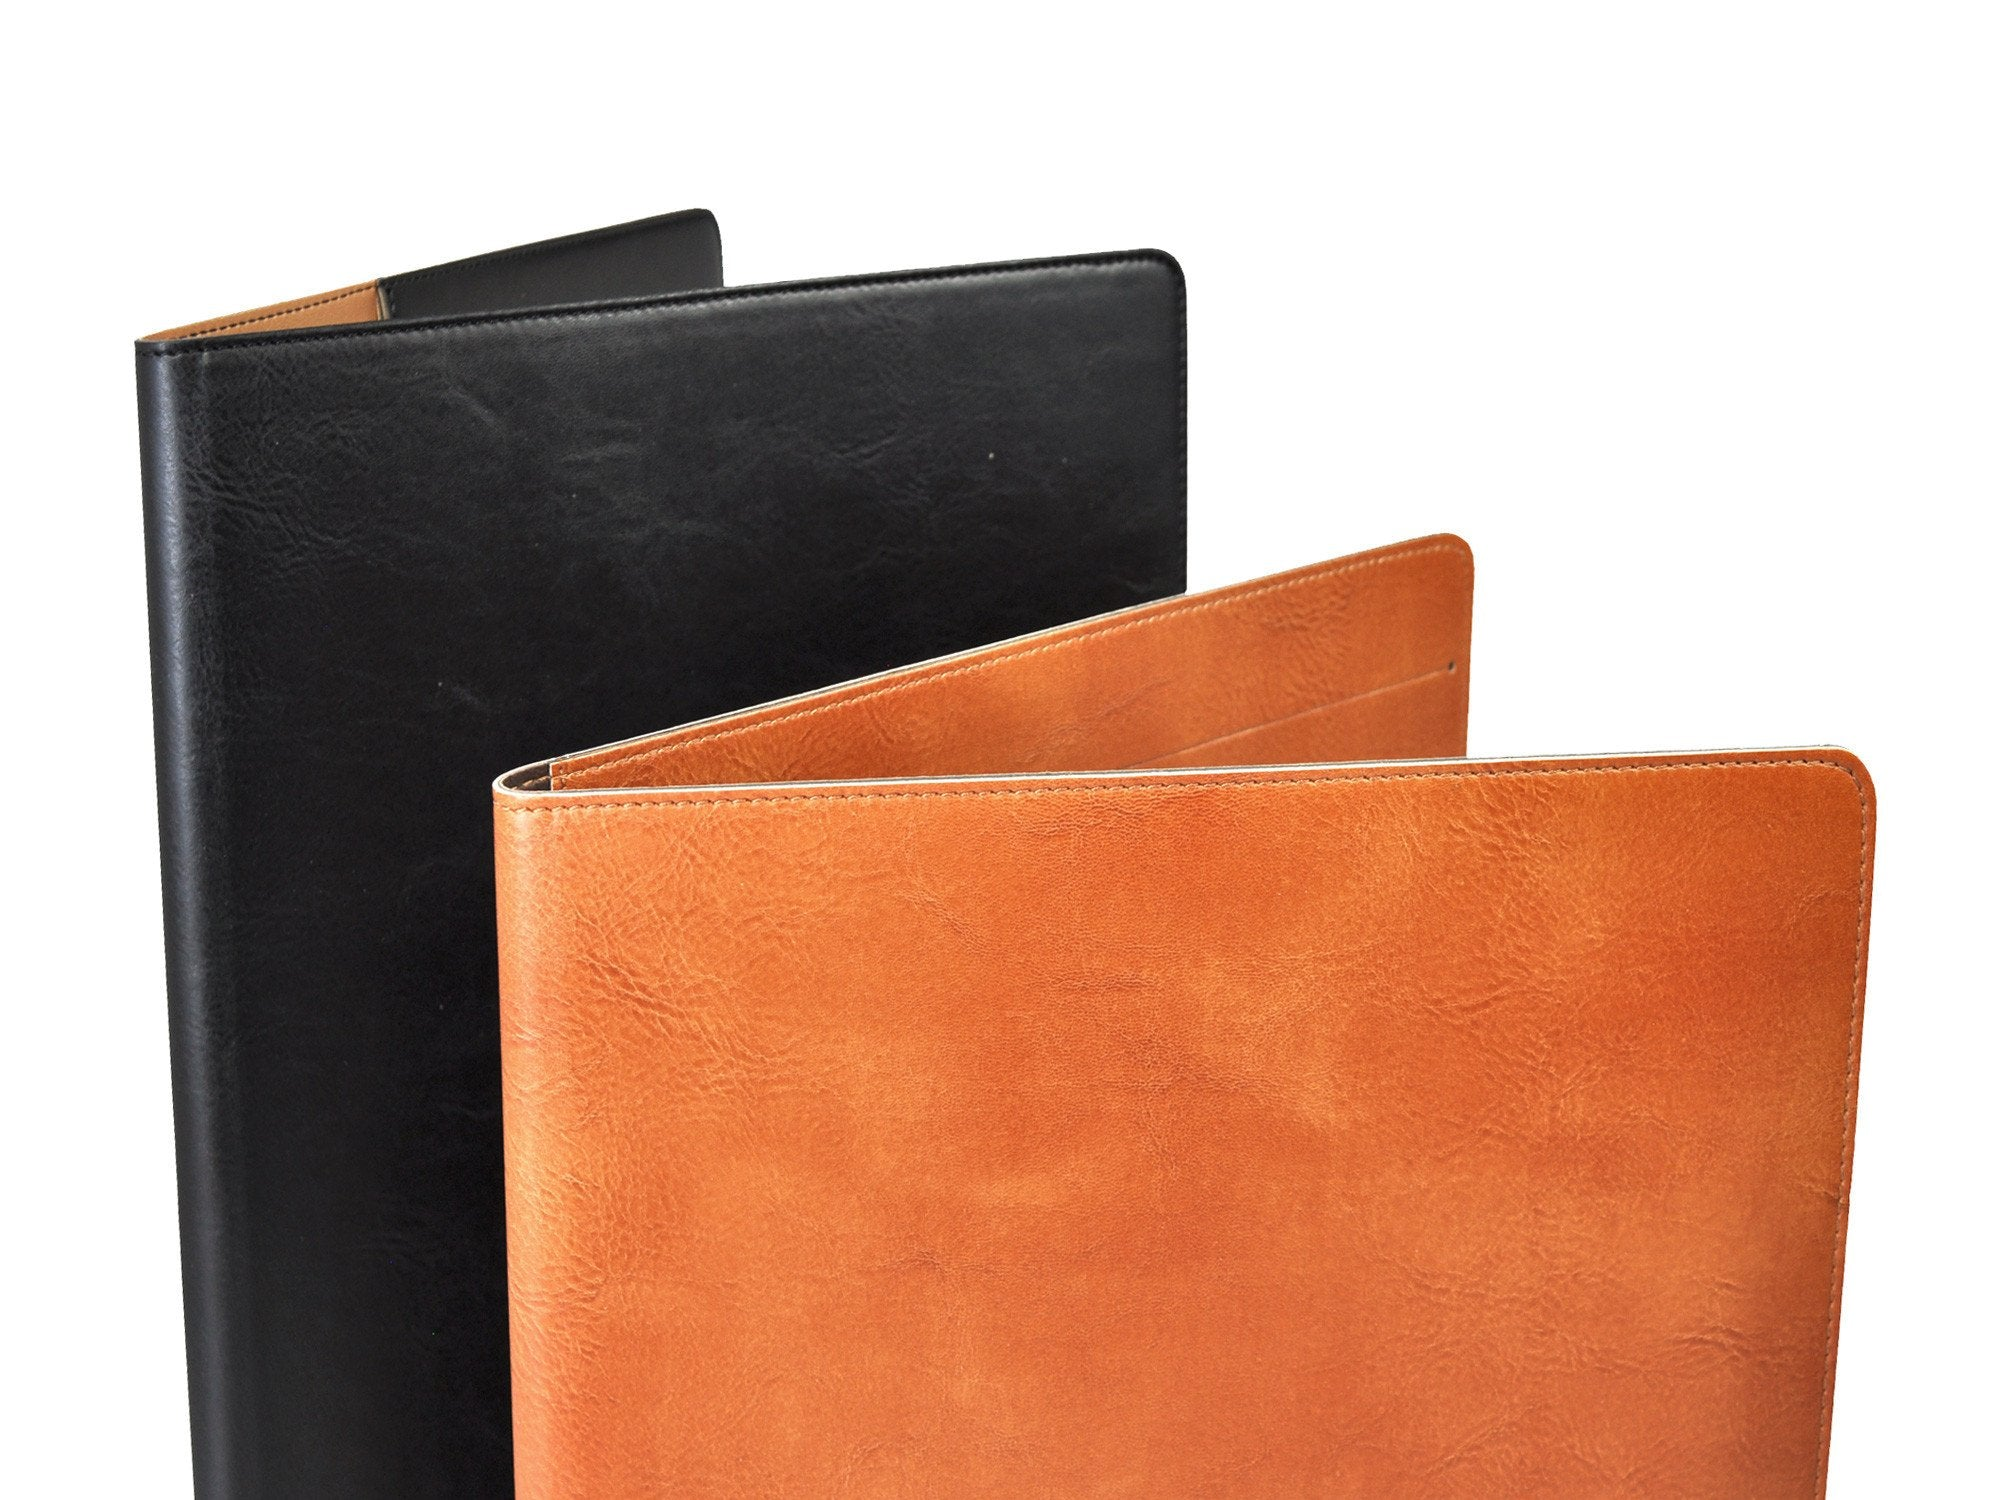 Fiorentina Leather Portfolio